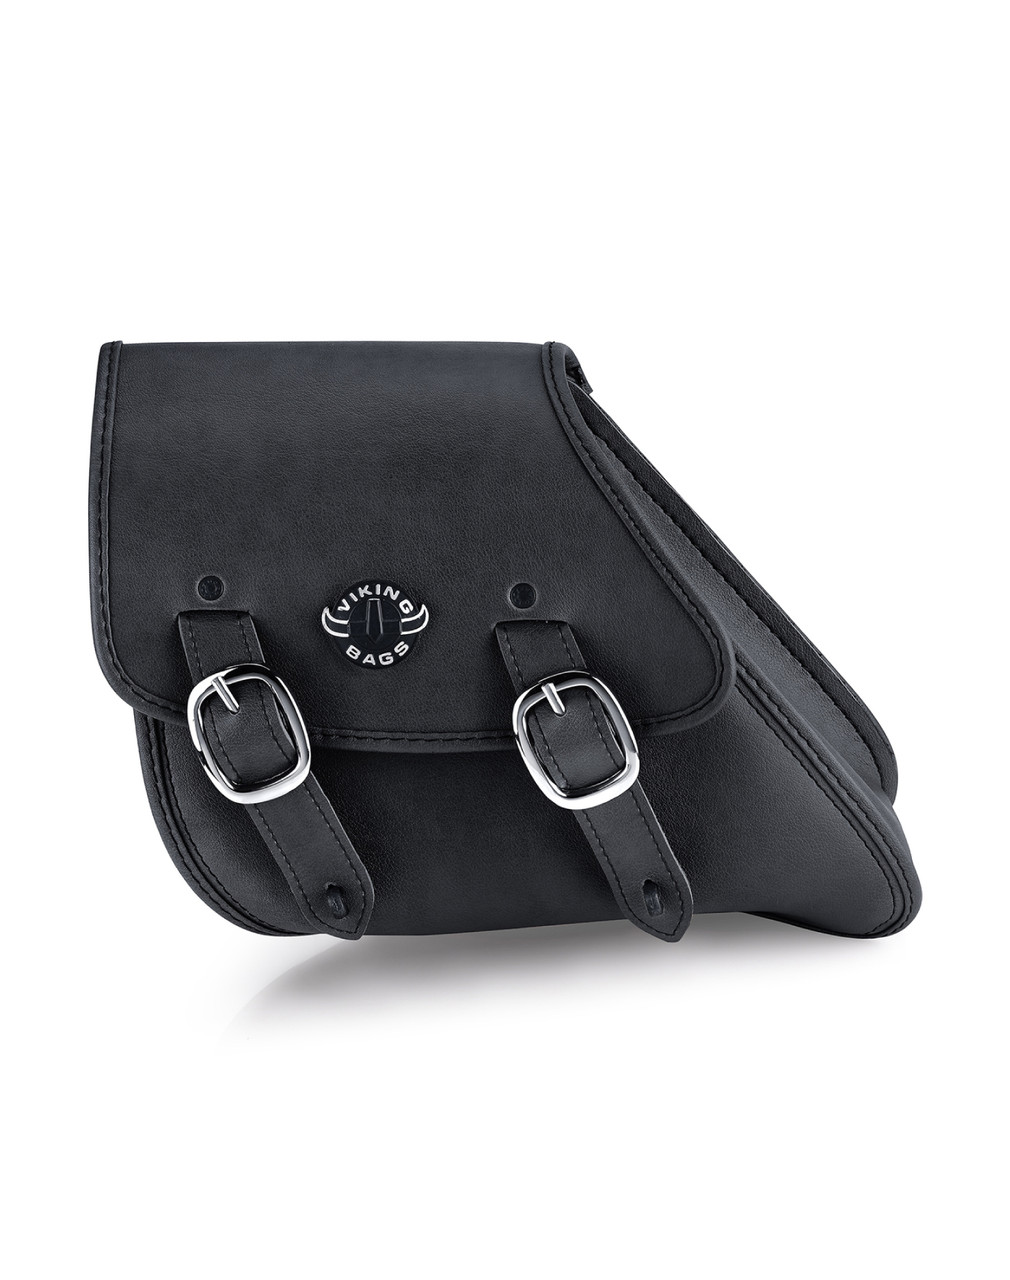 VikingBags Dyna Motorcycle Black Swing Arm Bag Front View